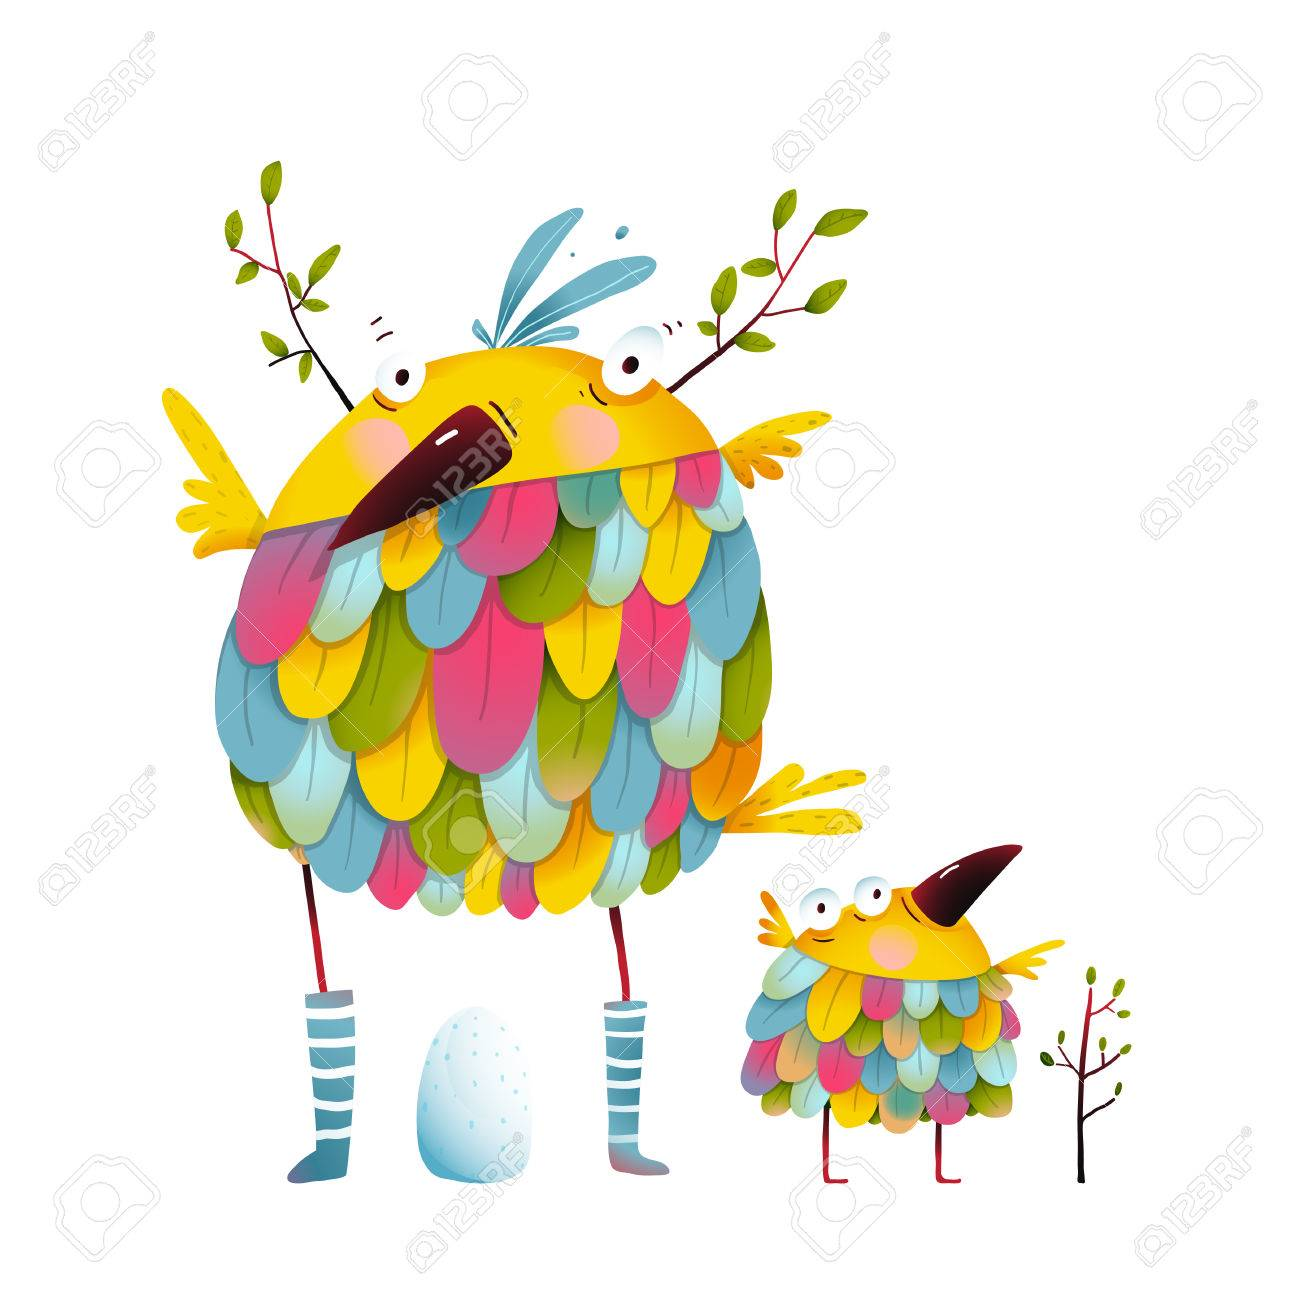 Funny bird family mother and nestling. Bird parent funny love child greeting card design. illustration. - 56058616